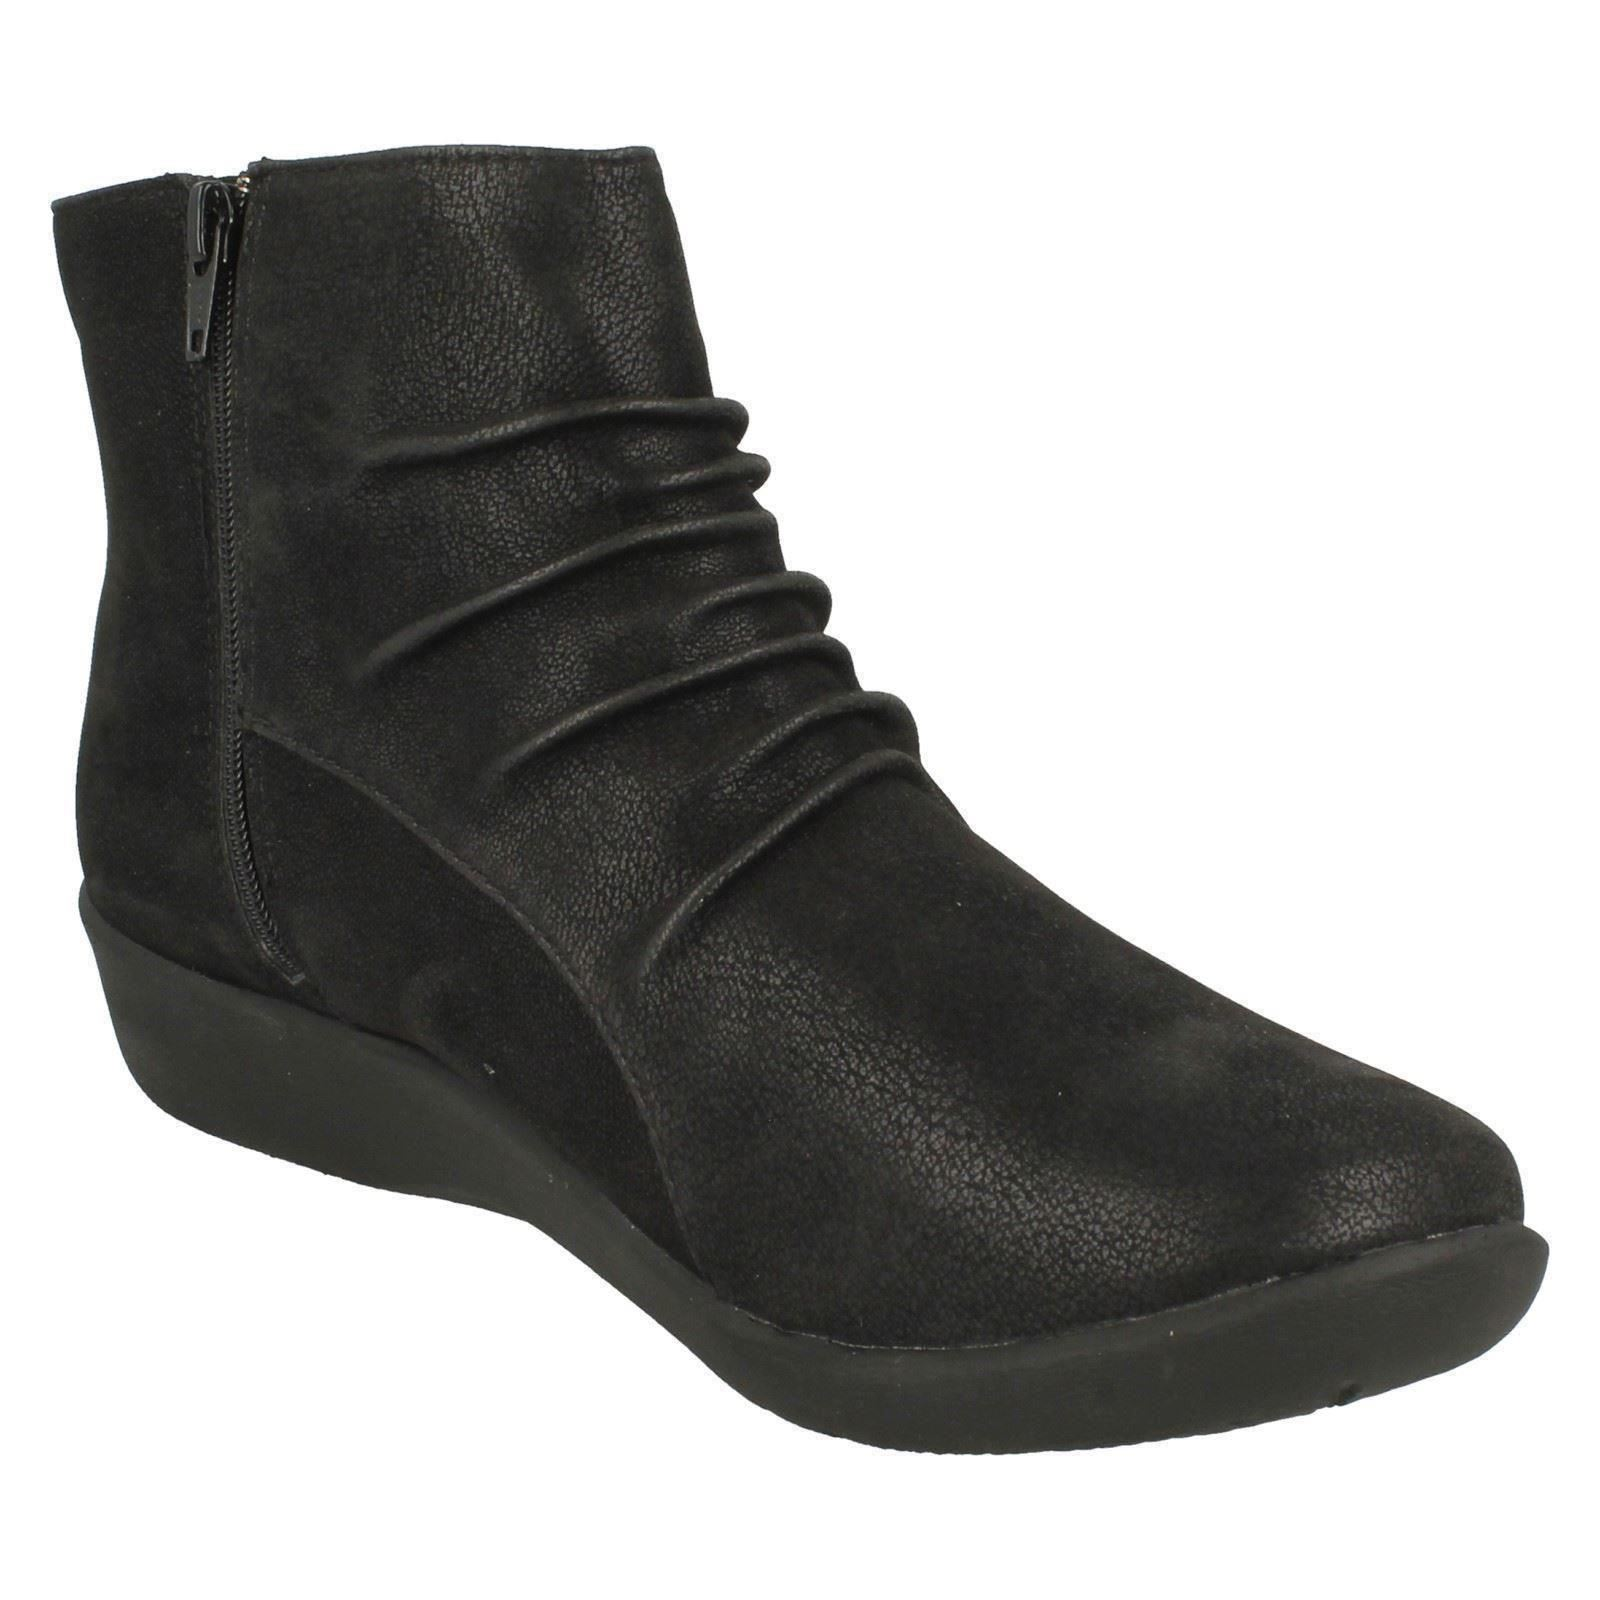 Ladies Clarks Cloud Steppers Boots Sillian Chell